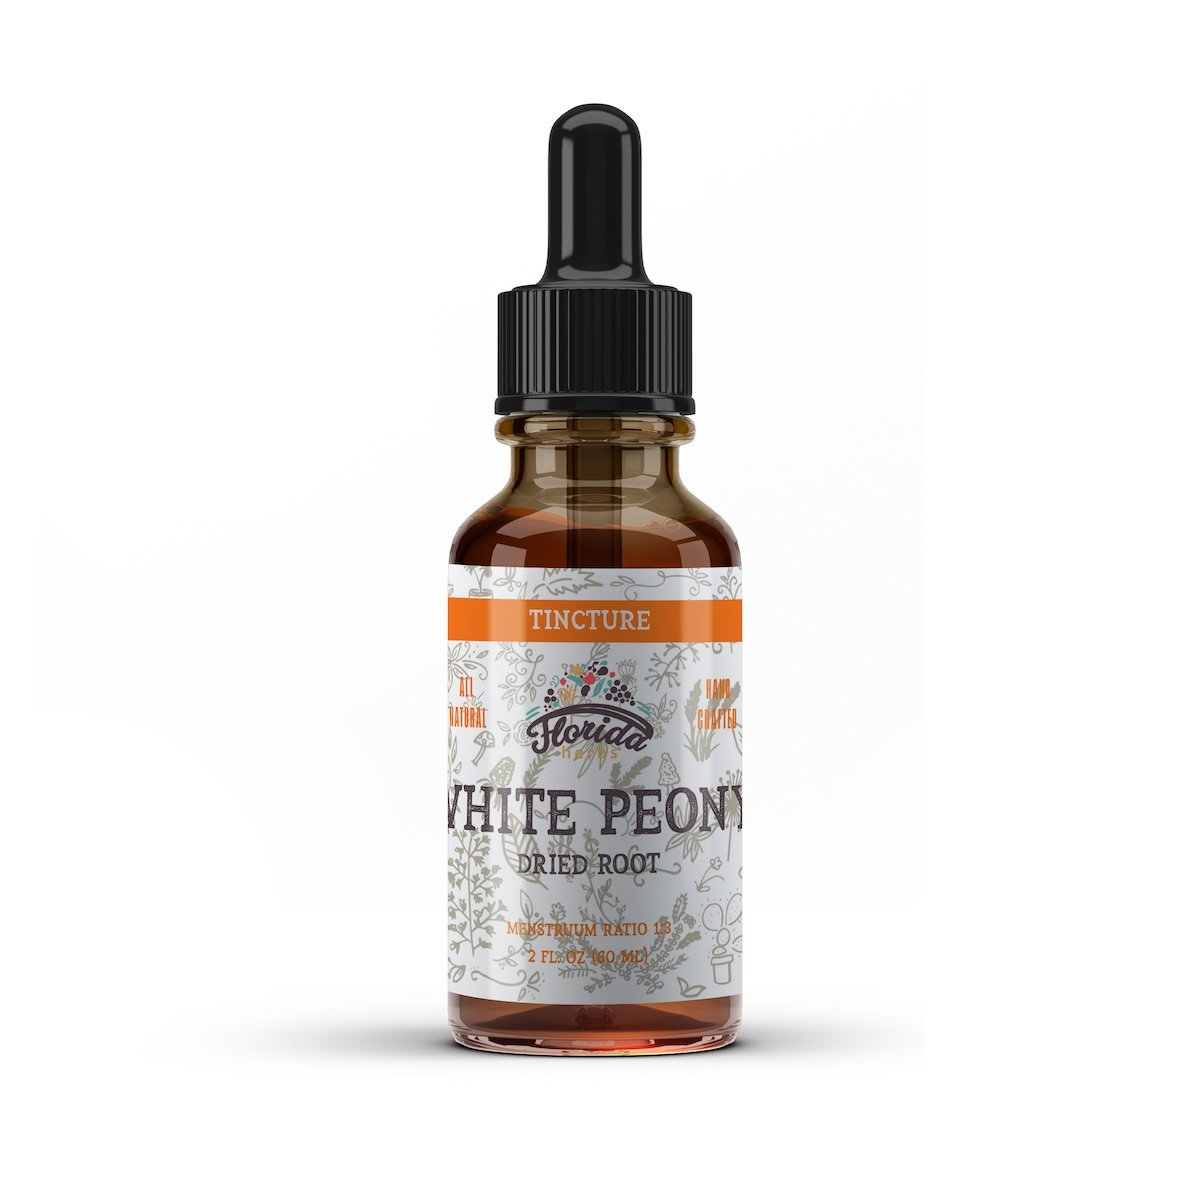 White Peony Tincture, Organic White Peony Extract (Paeonia Lactiflora) Root, Non-GMO in Cold-Pressed Organic Vegetable Glycerin 4 oz, 670 mg